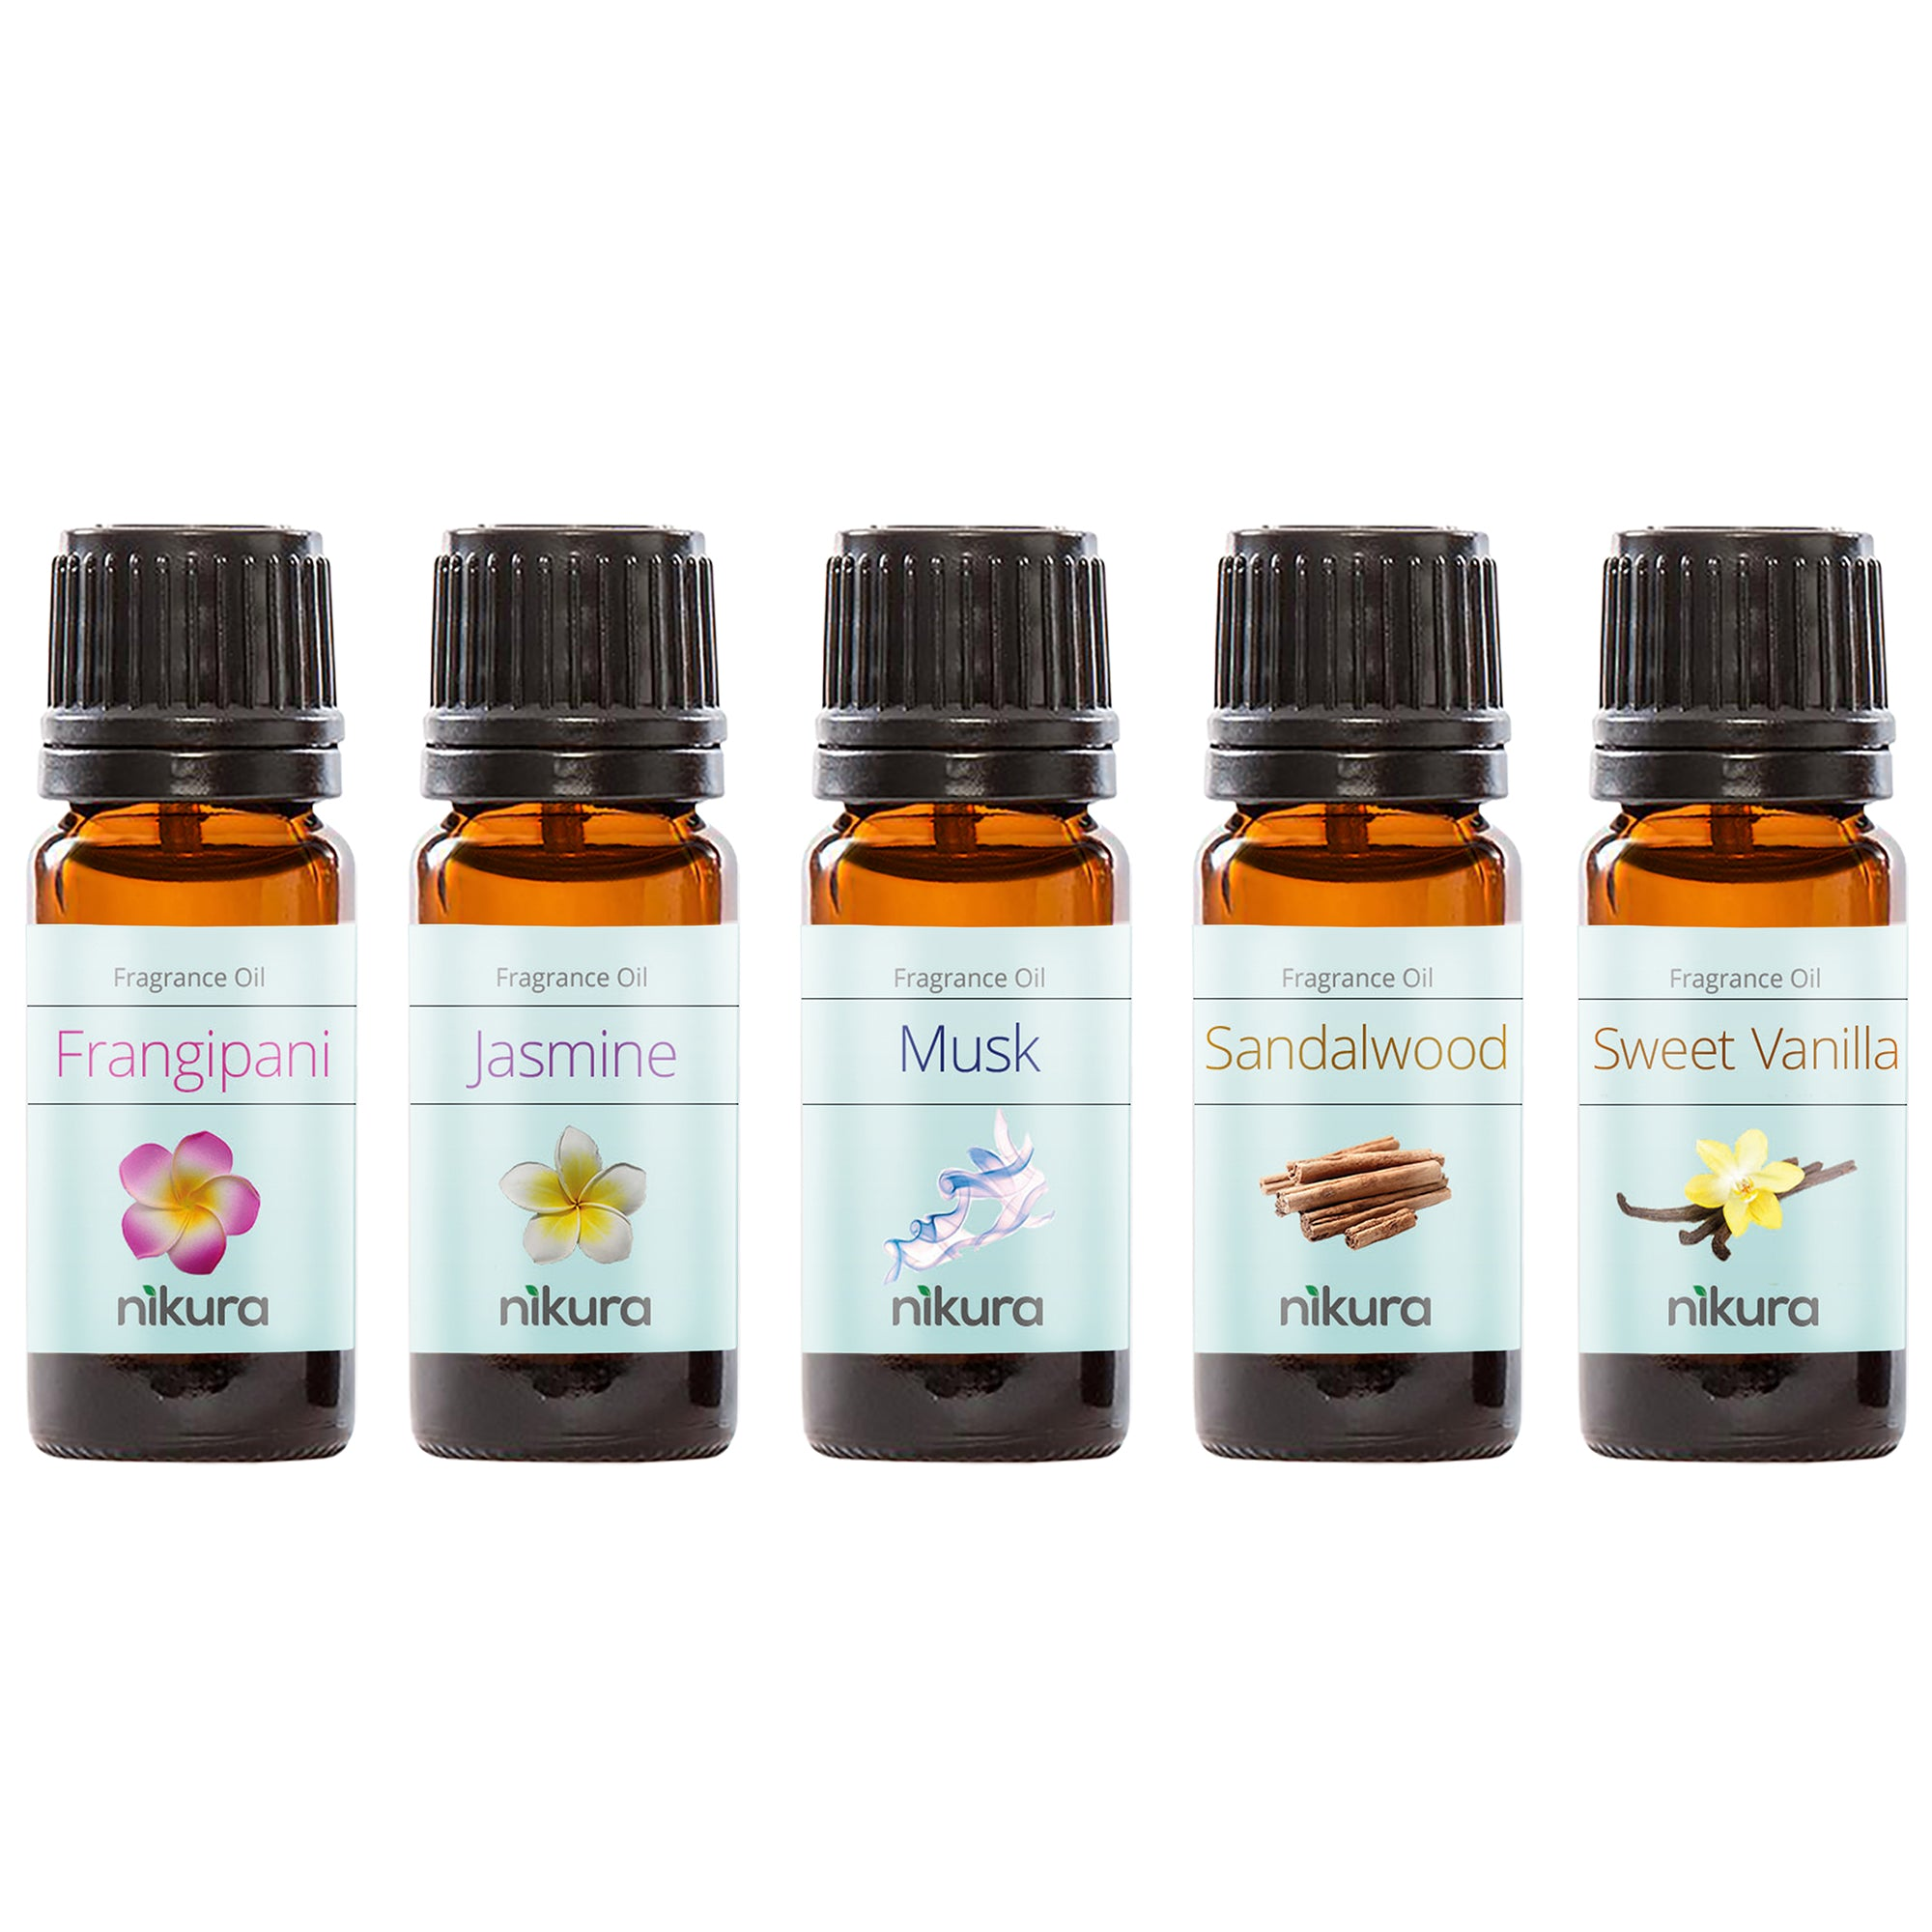 WOW Starter Gift Set - 5 x 10ml Fragrance Oils